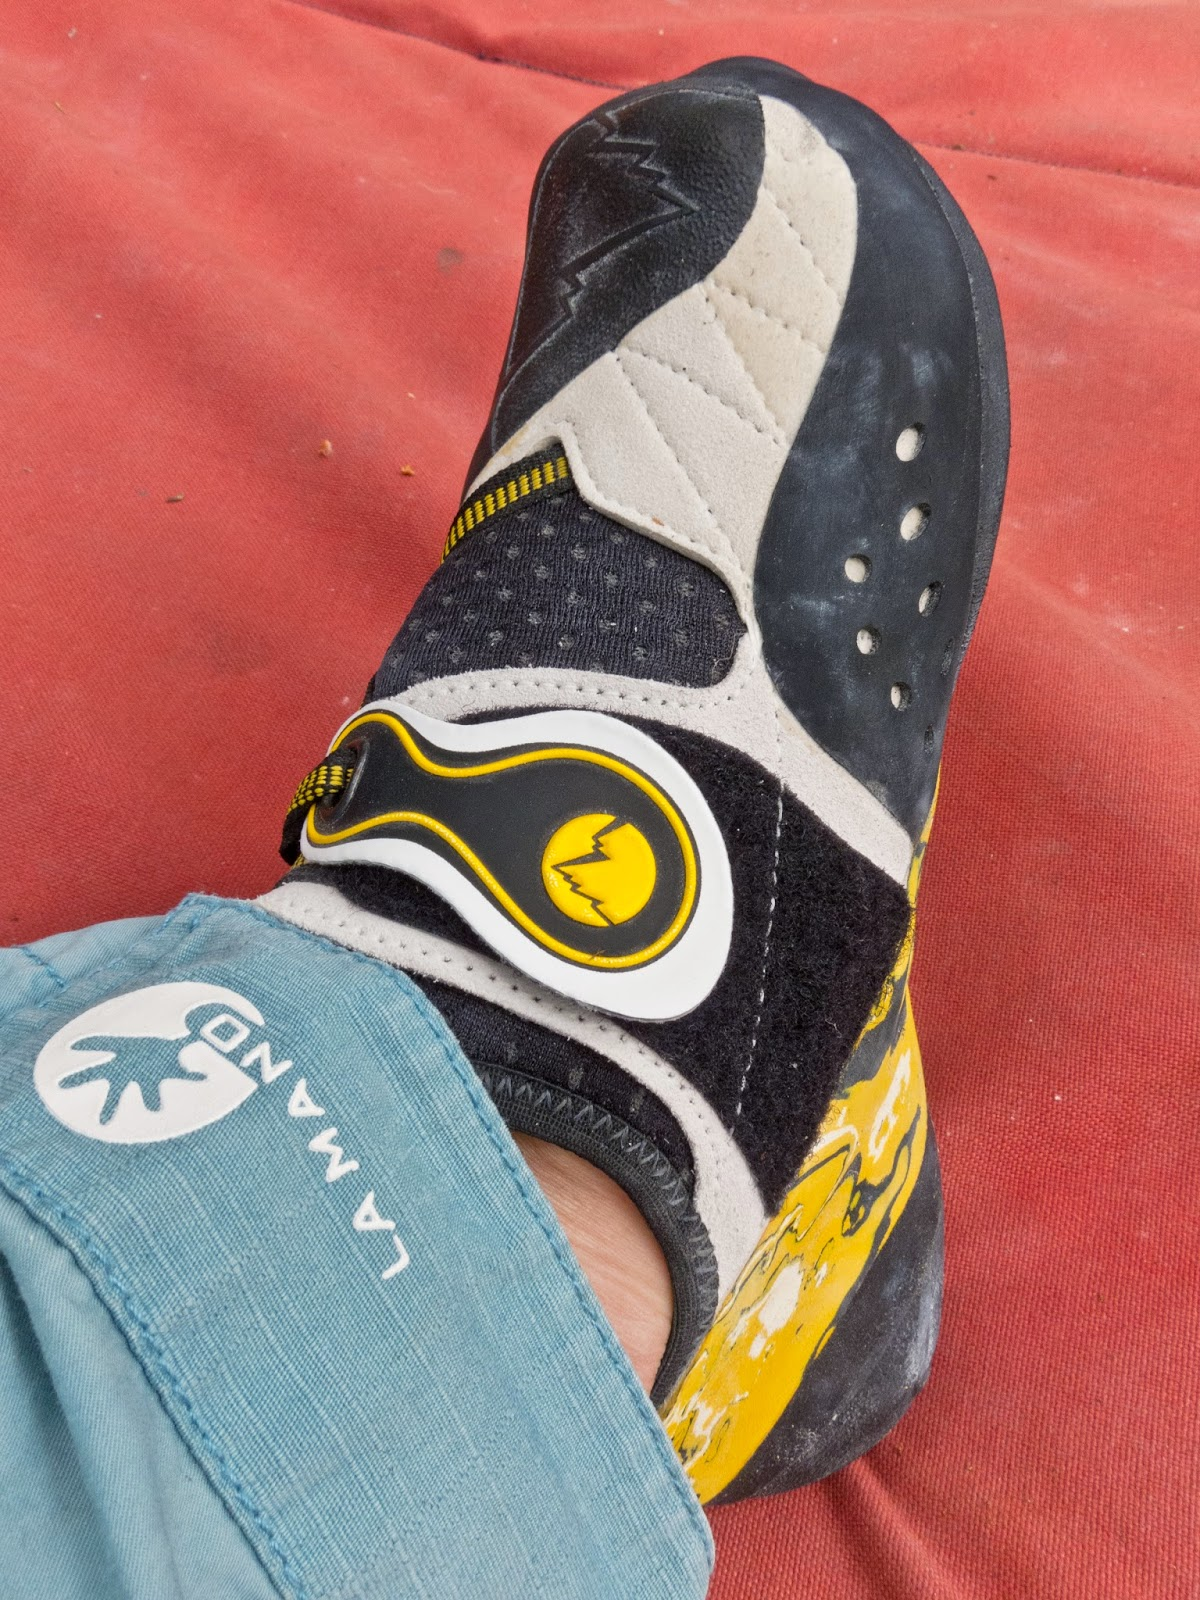 Passform La Sportiva Solution